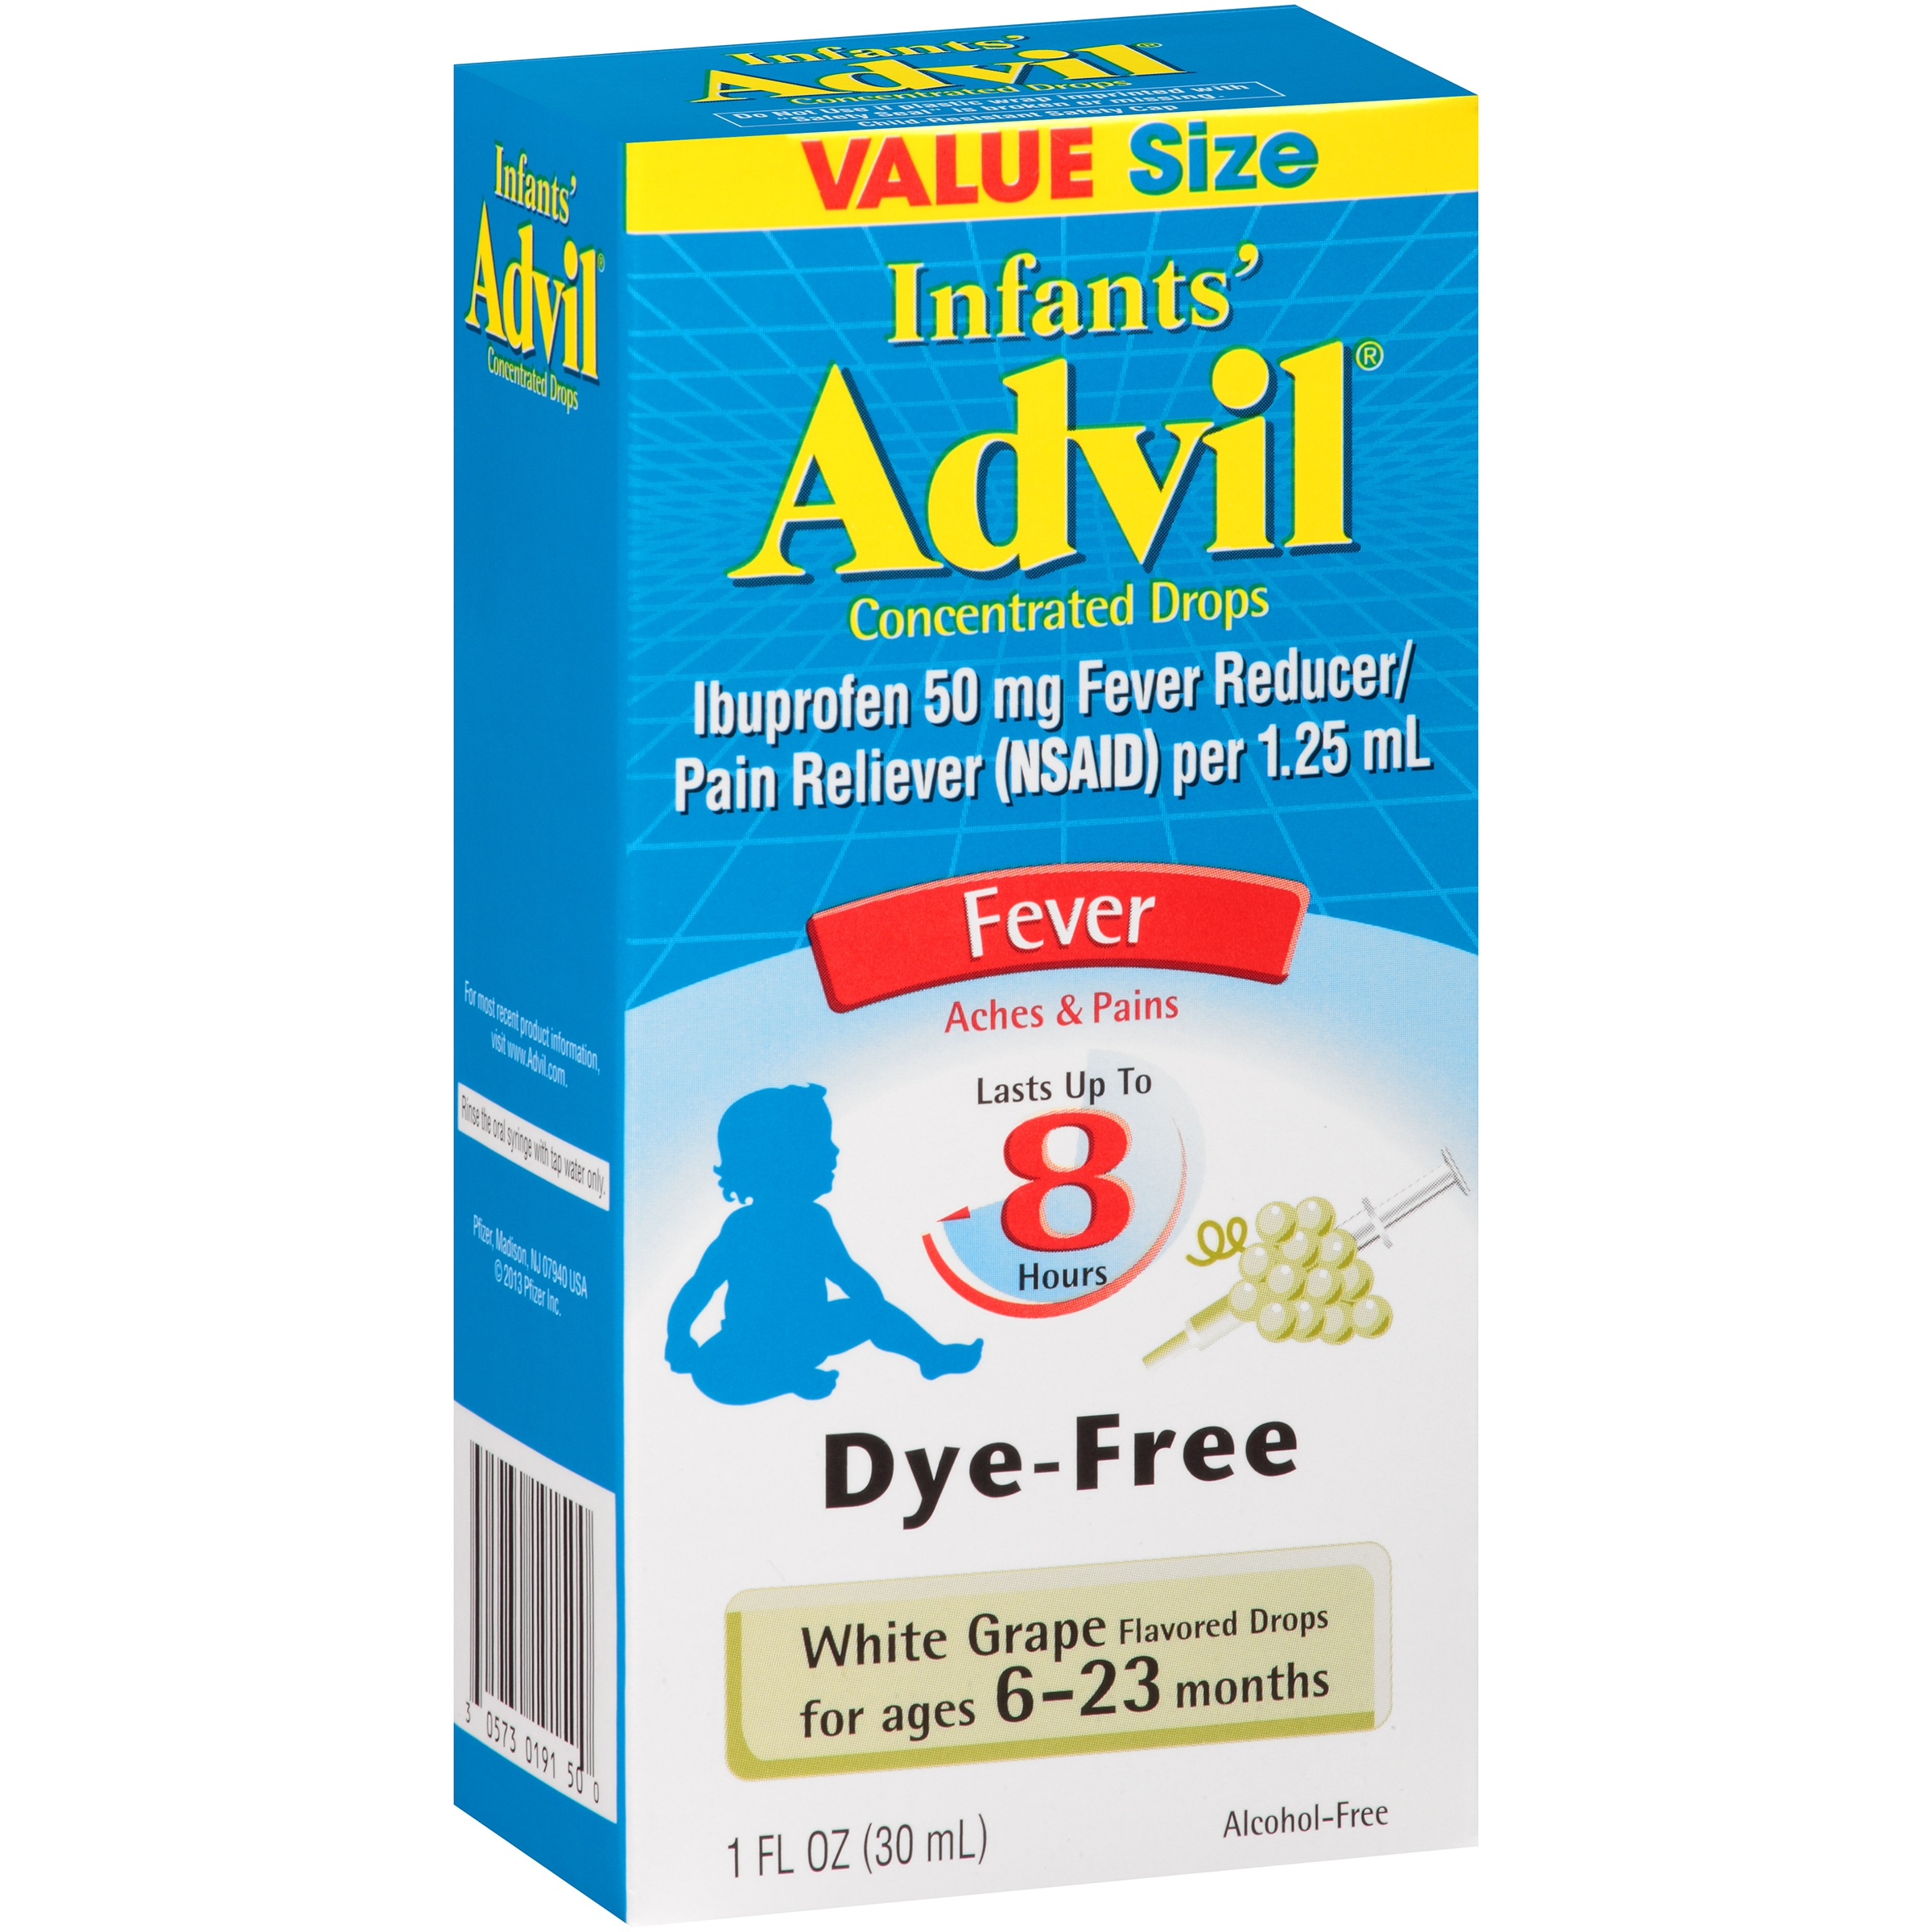 Infants' Advil Fever White Grape Fever Reducer/Pain Reliever Concentrated Drops, 1 fl oz